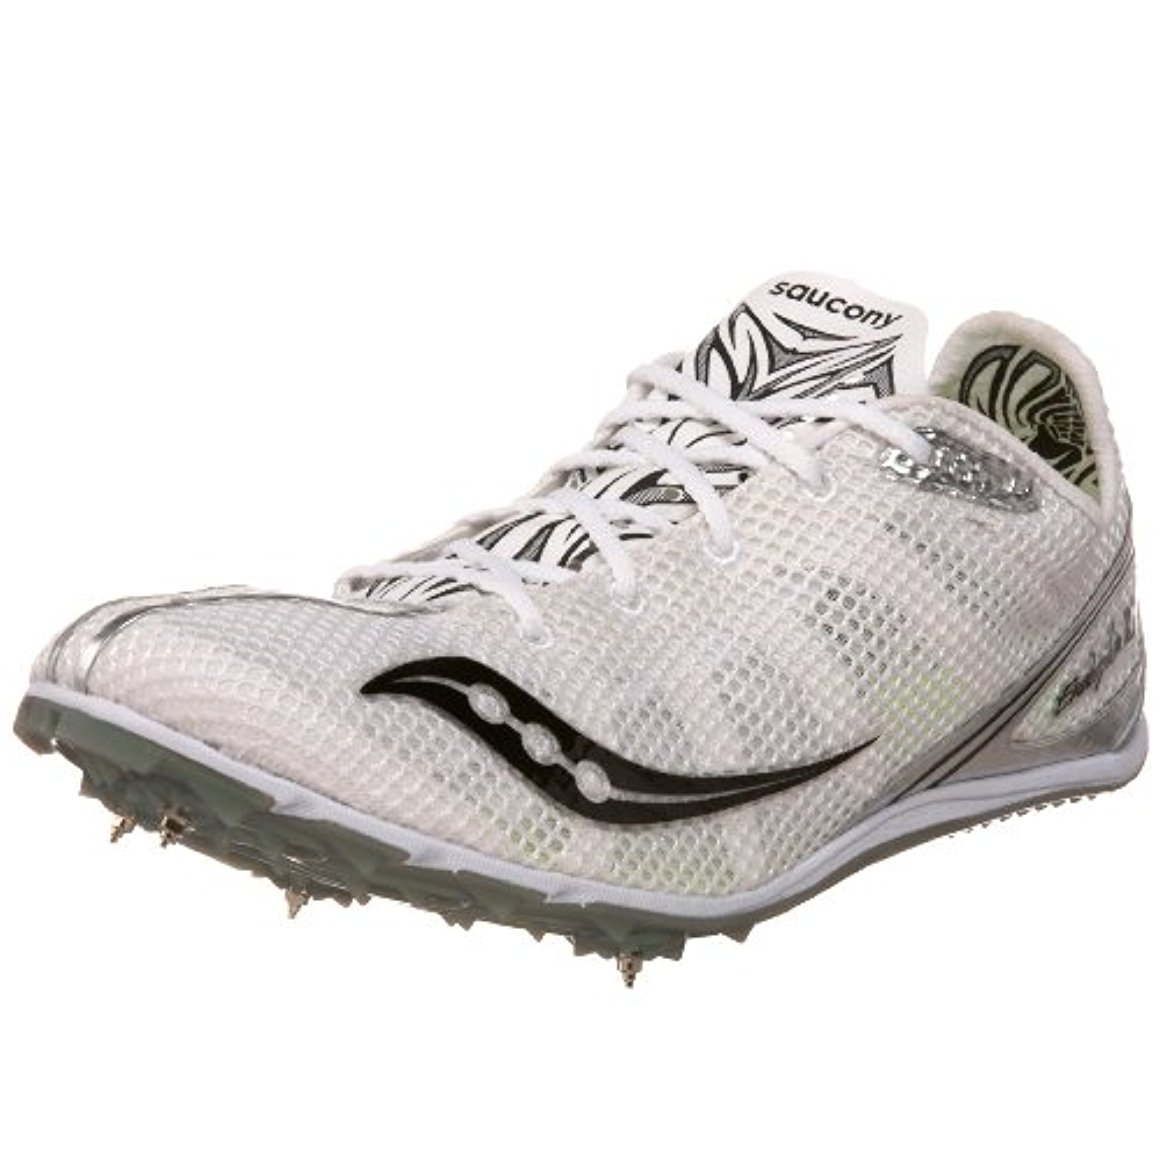 Saucony Men's Endorphin Spike Ld2 Track Spike,11.5 M US,White Silver Green by